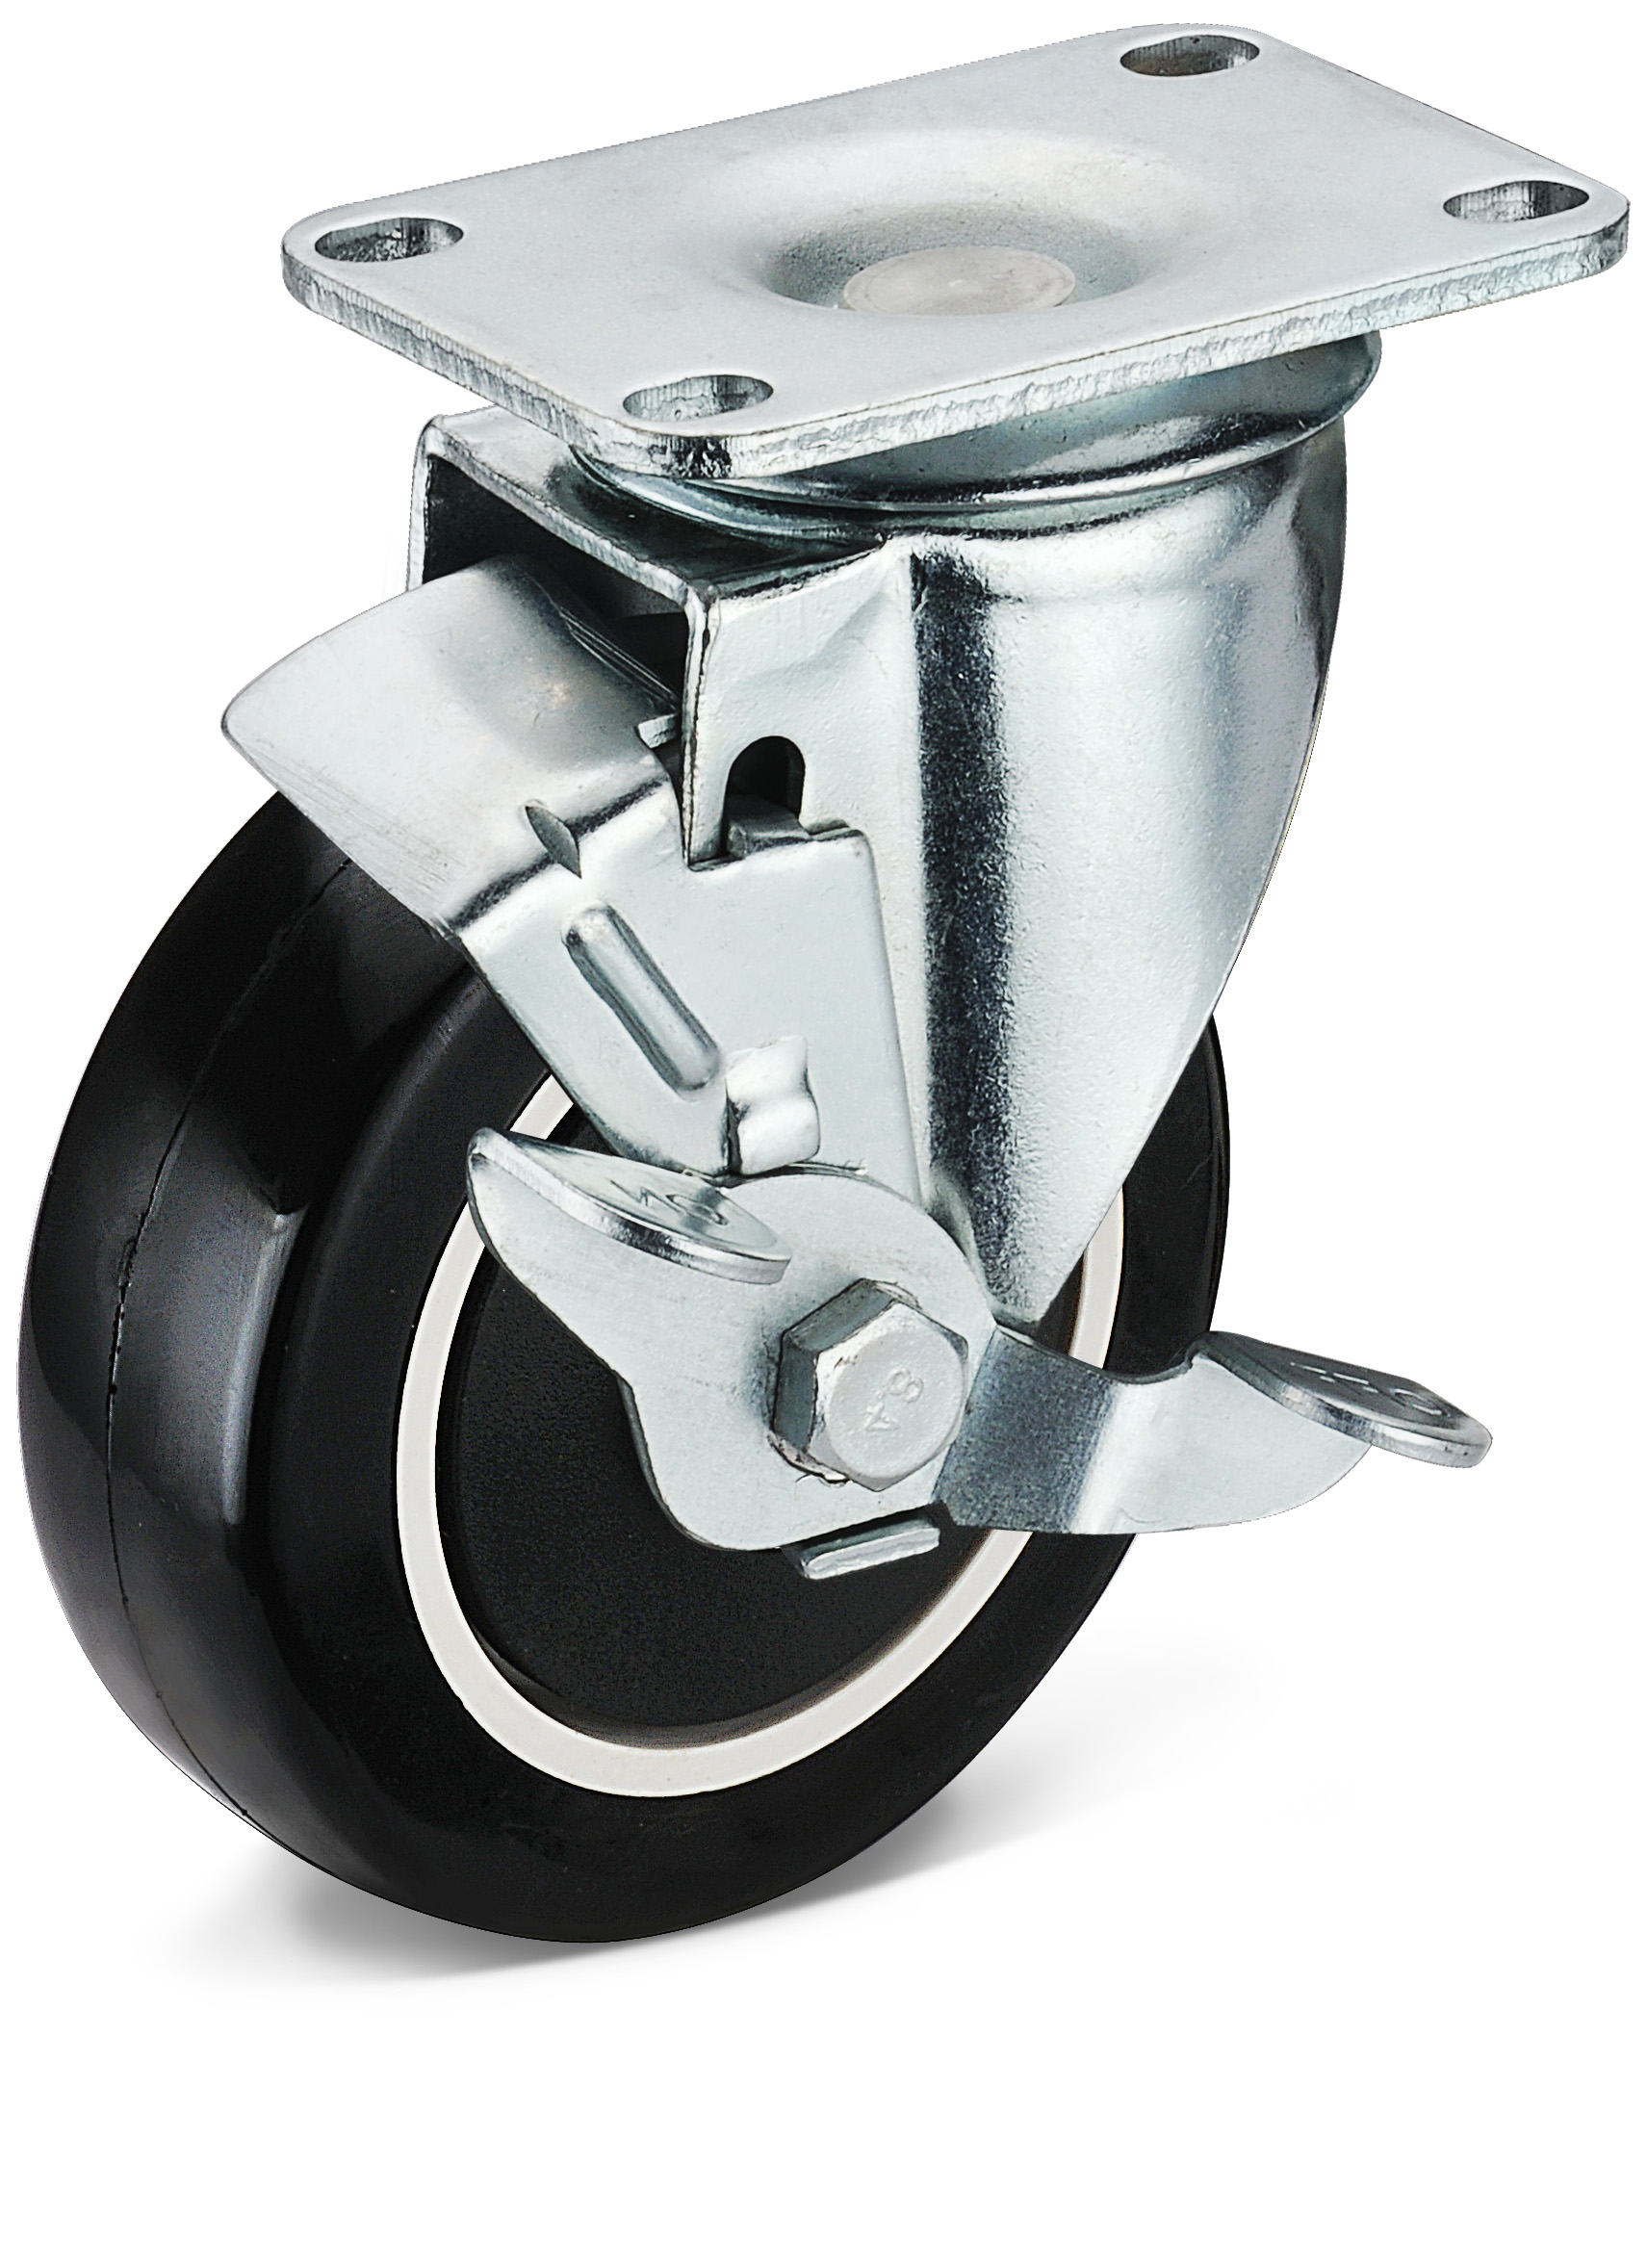 Furniture Casters with brake